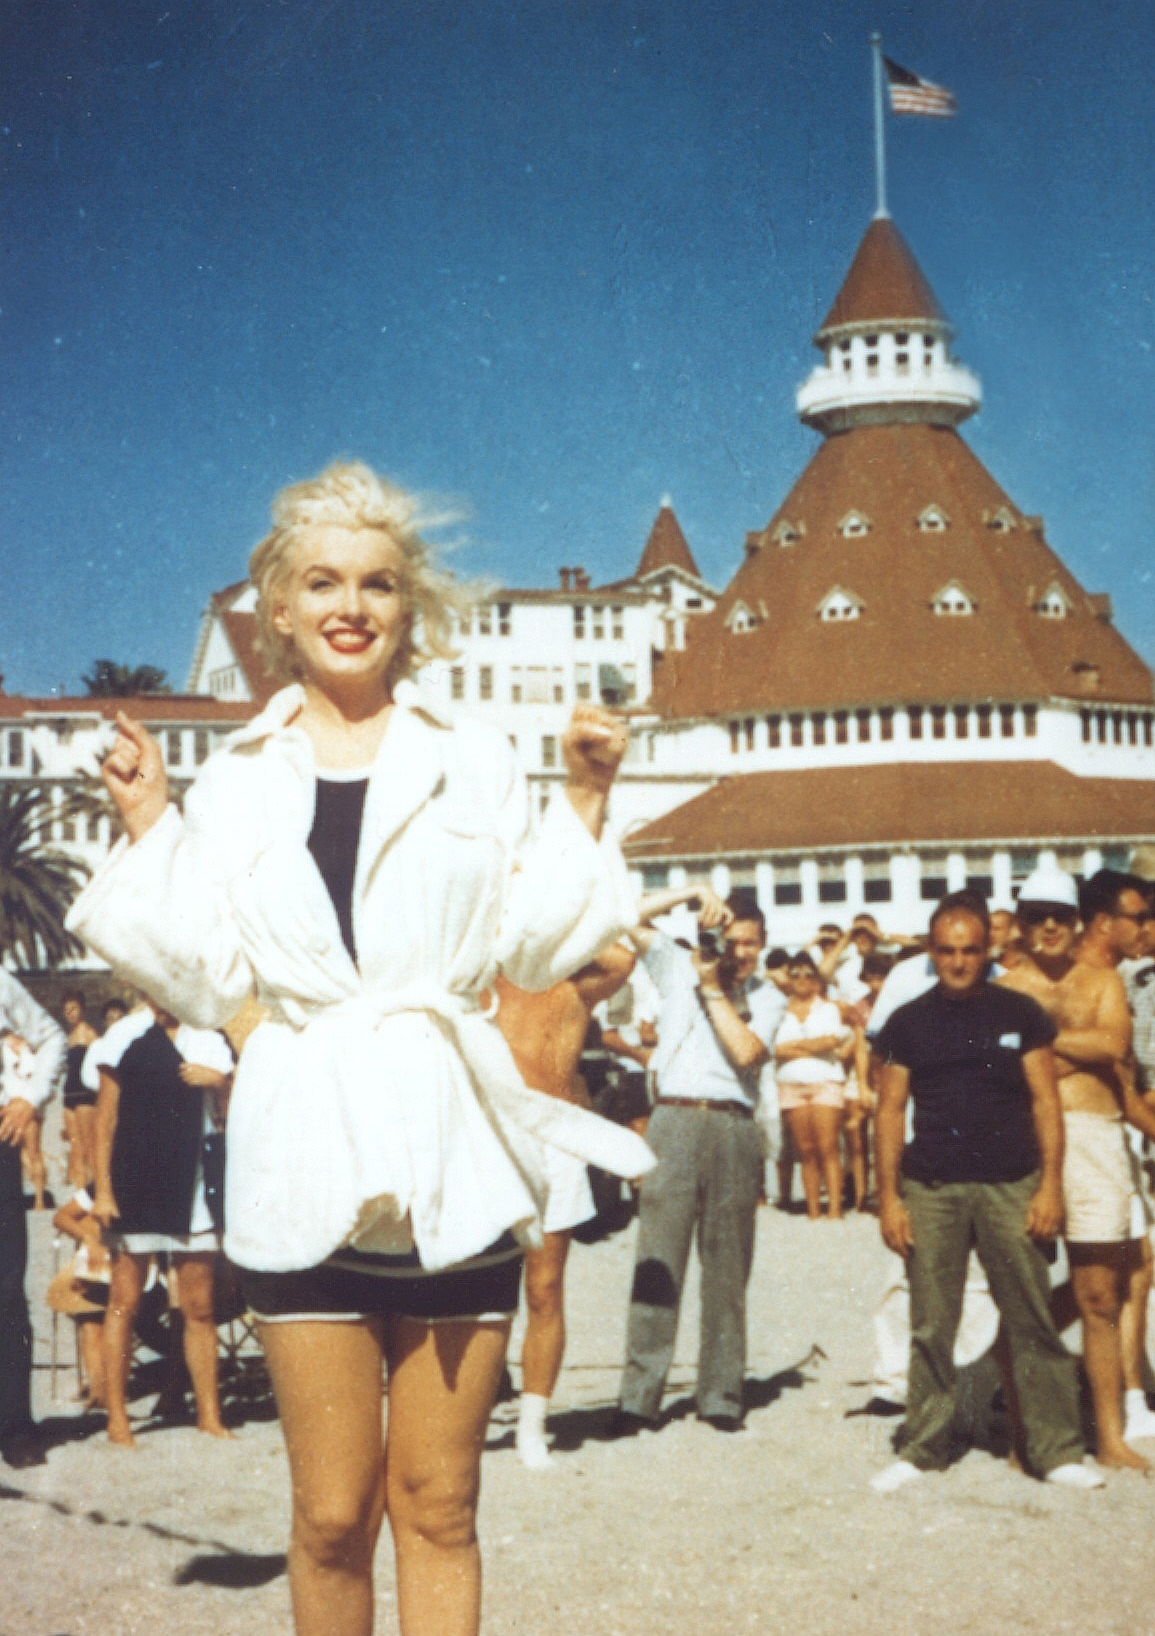 Marilyn Monroe on the set of 'Some Like It Hot' at the Hotel del Coronado